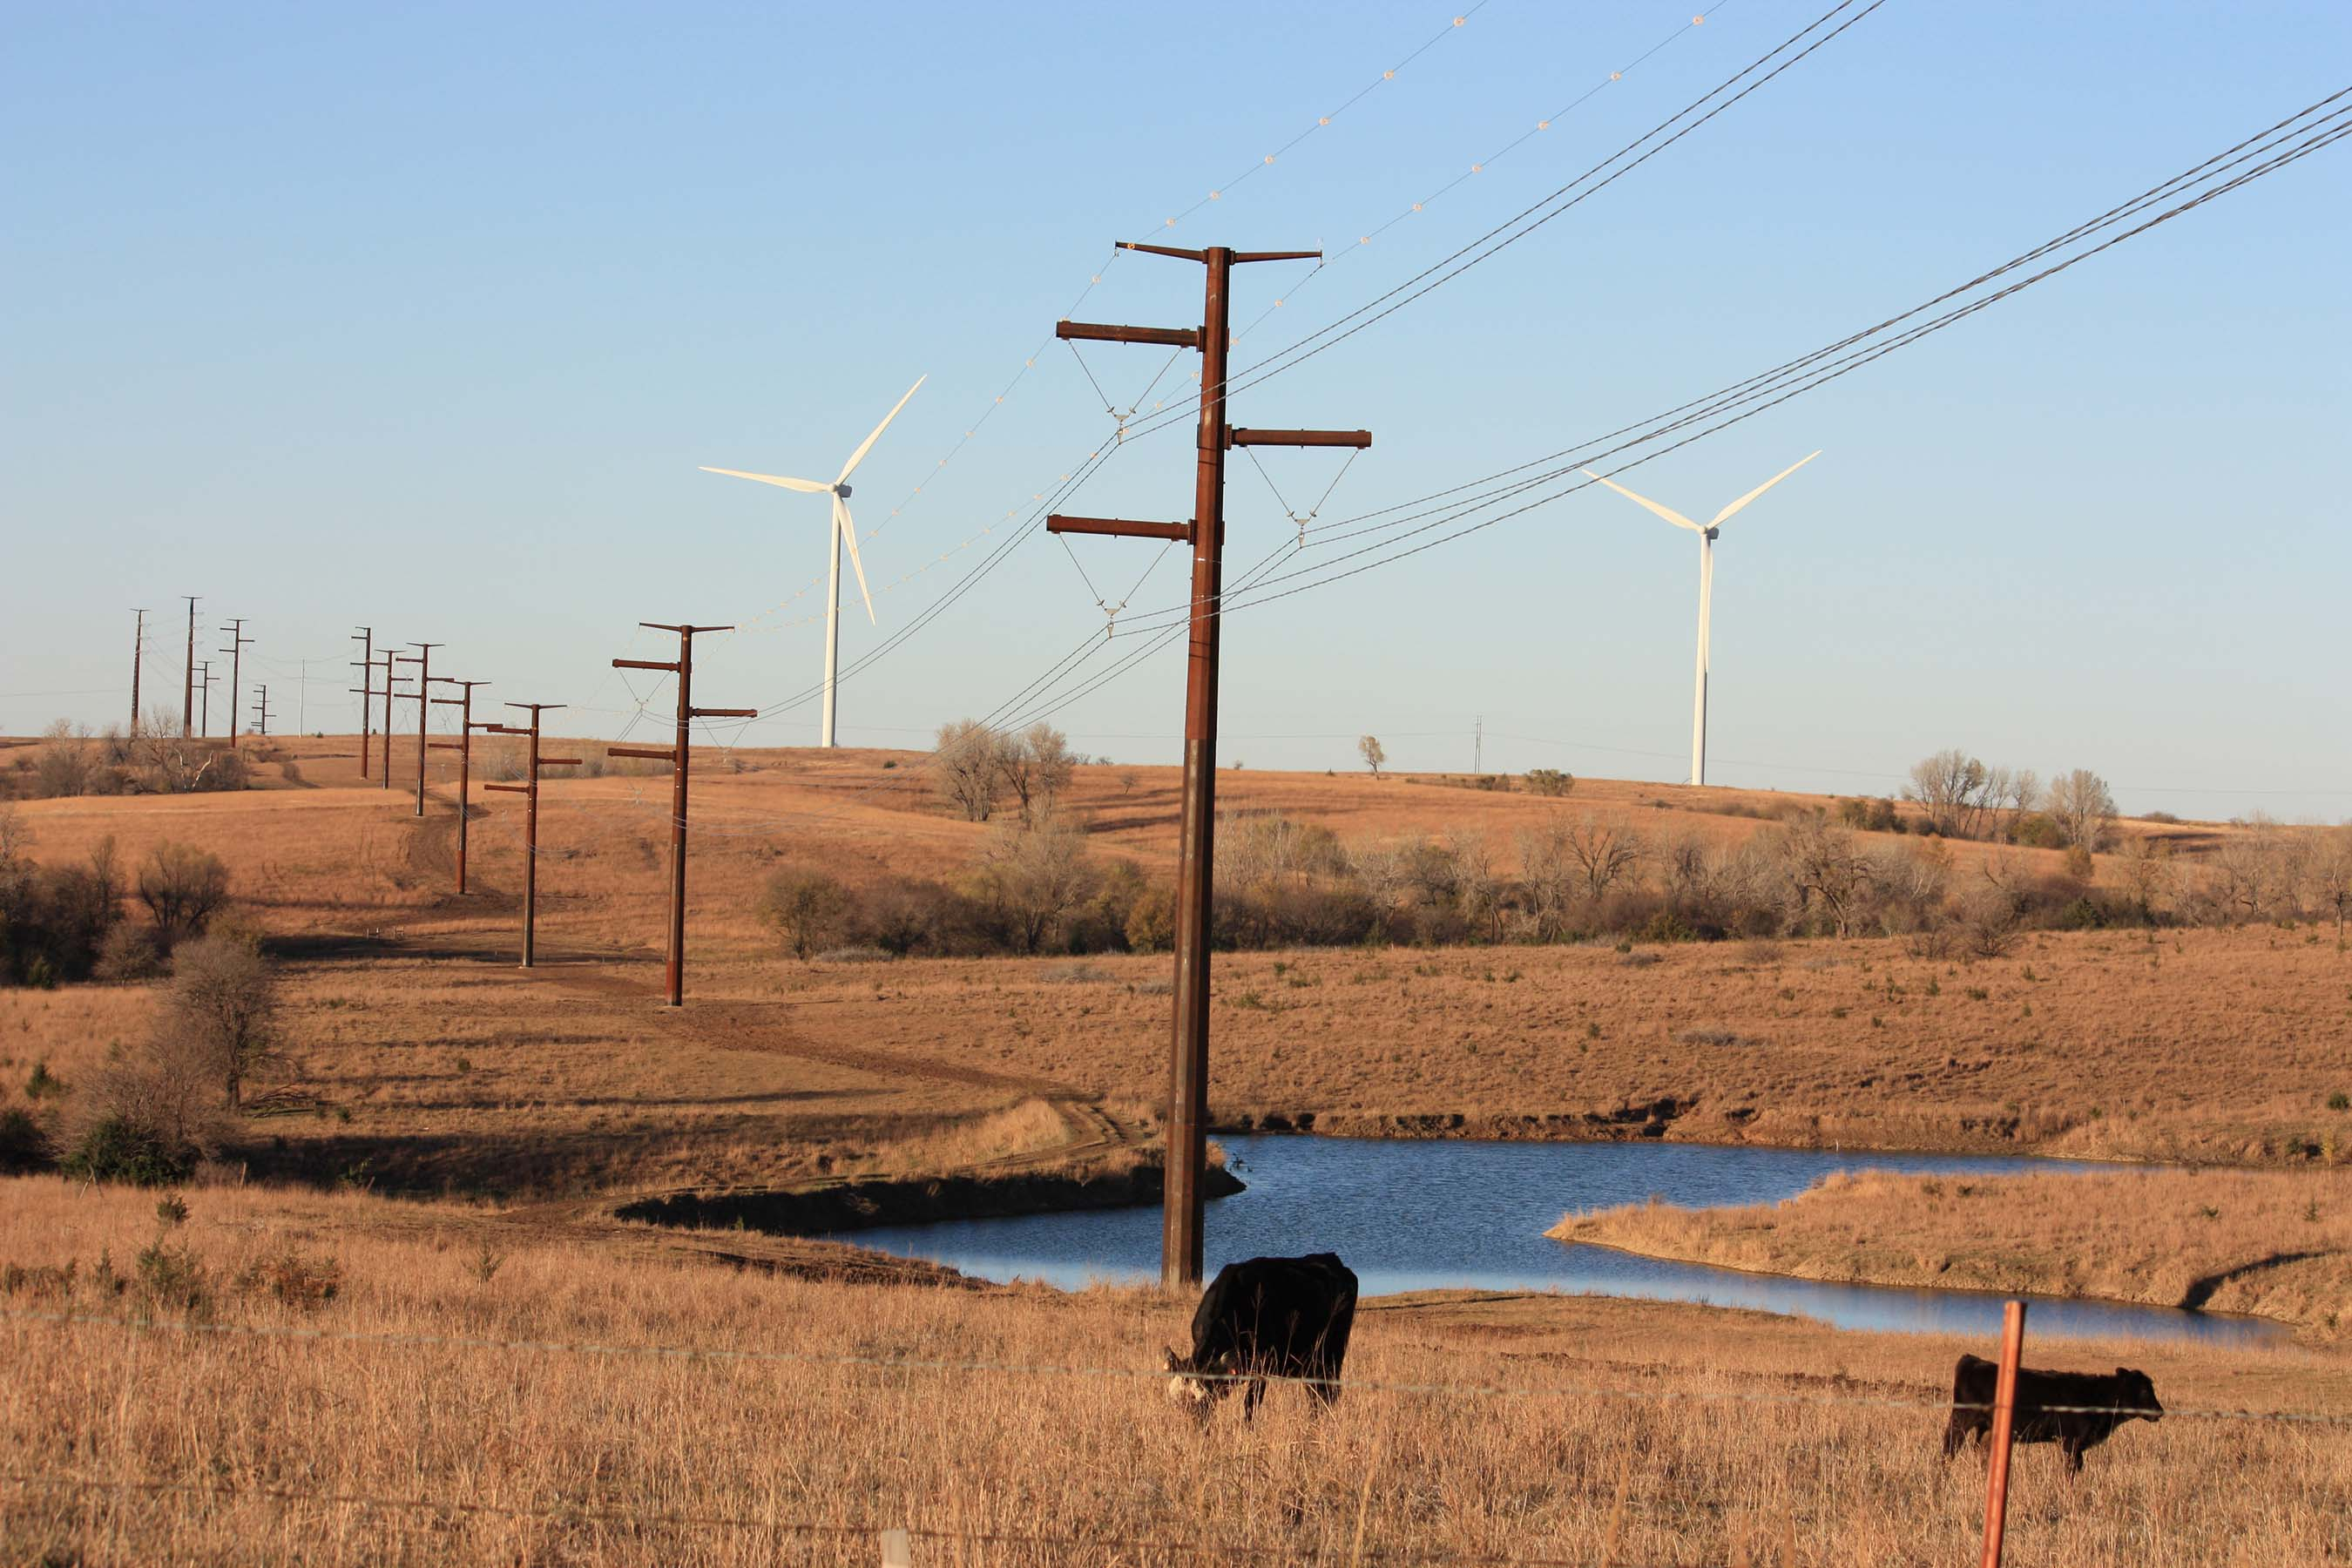 The Elm Creek-Summit transmission line will enable energy developers to tap into the grid and promote economic development in the area.